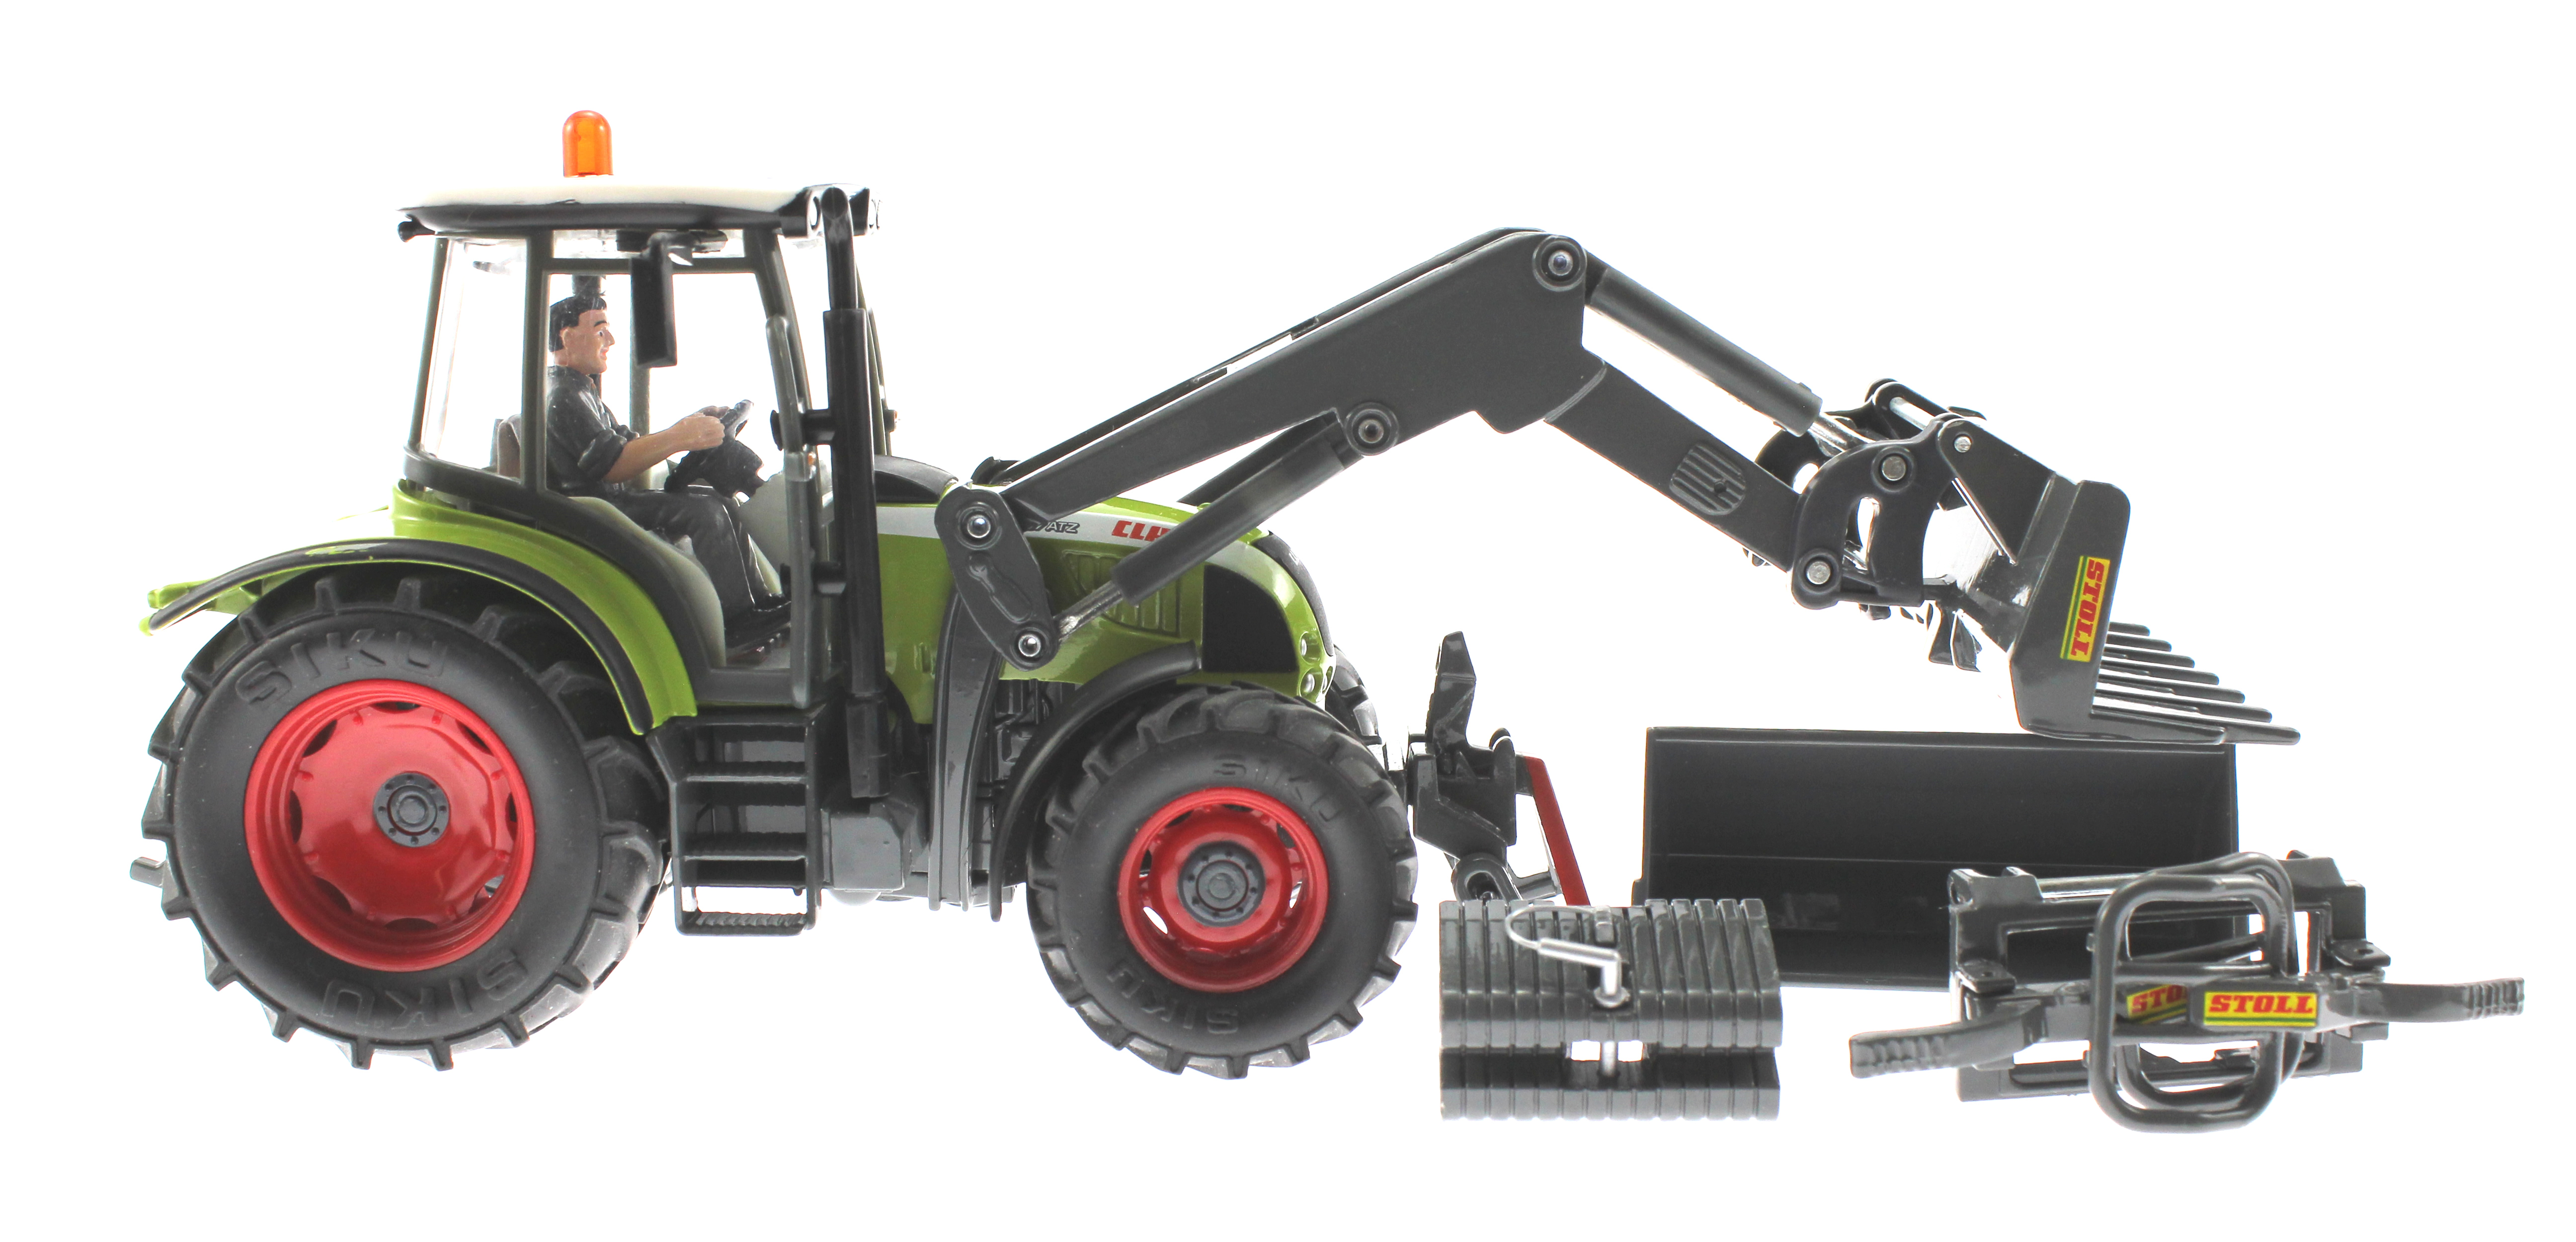 siku 8856 claas traktor set 125 jahre karstadt. Black Bedroom Furniture Sets. Home Design Ideas